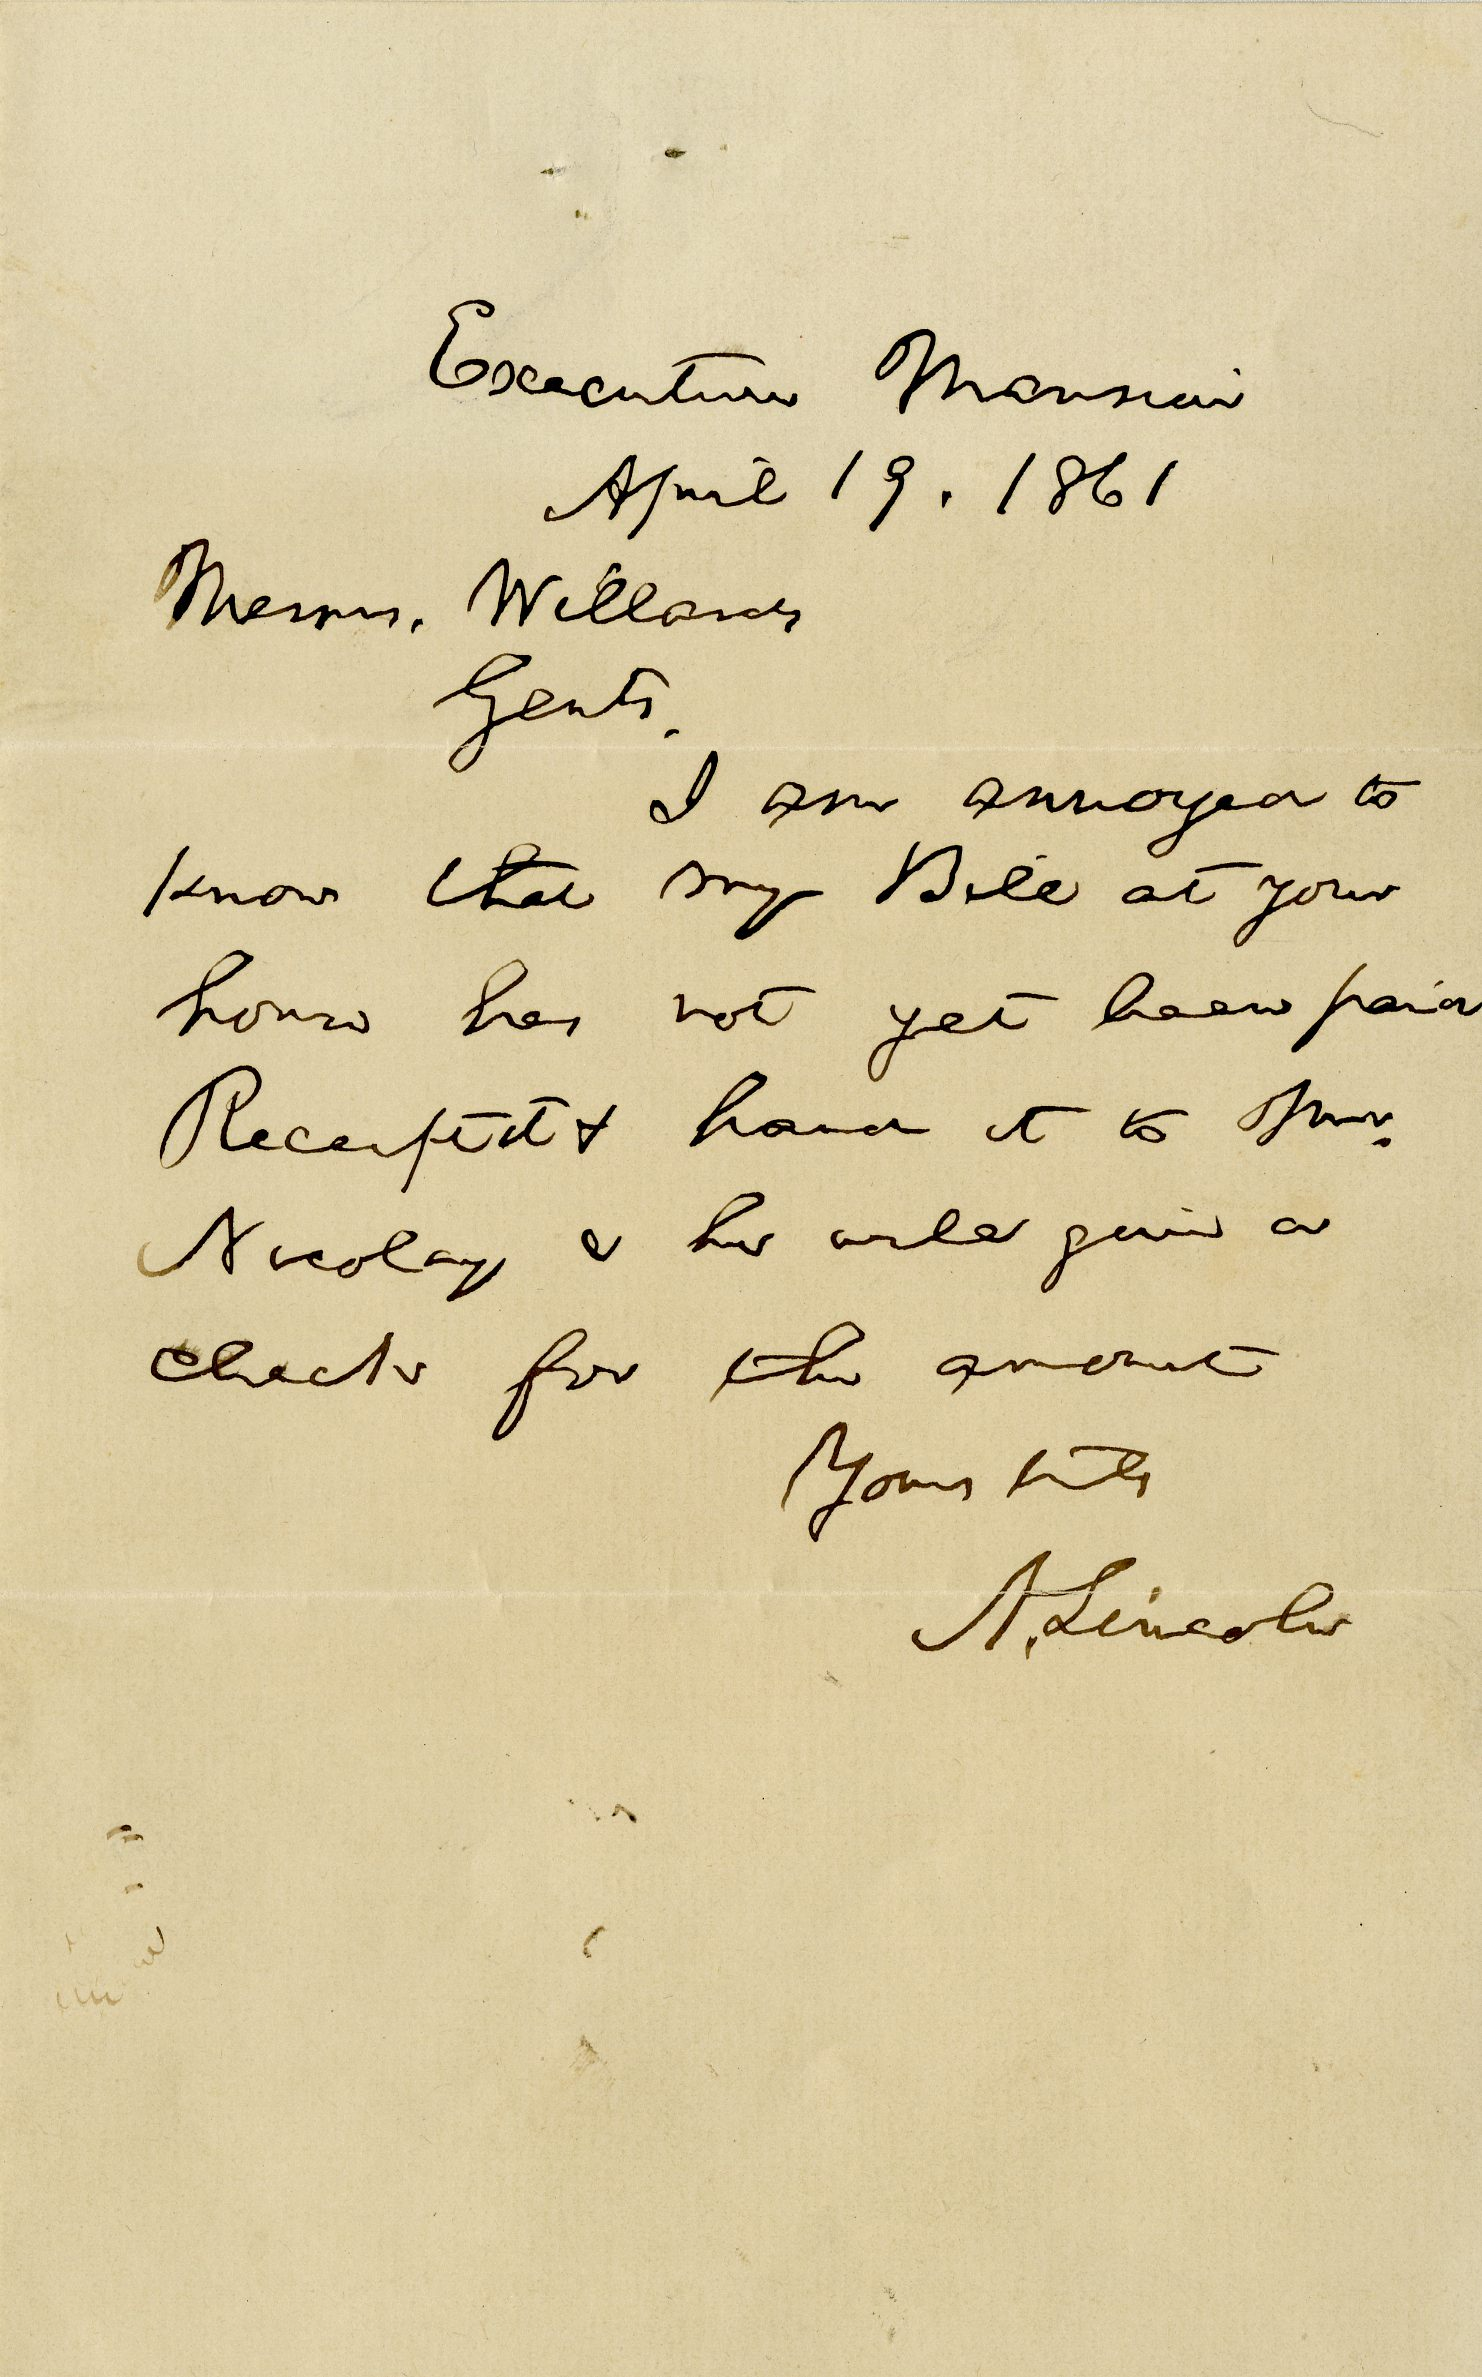 """Honest Abe"" Lincoln, Annoyed About an Unpaid Bill, Orders It Paid – On the Day He Effectively Declares War"